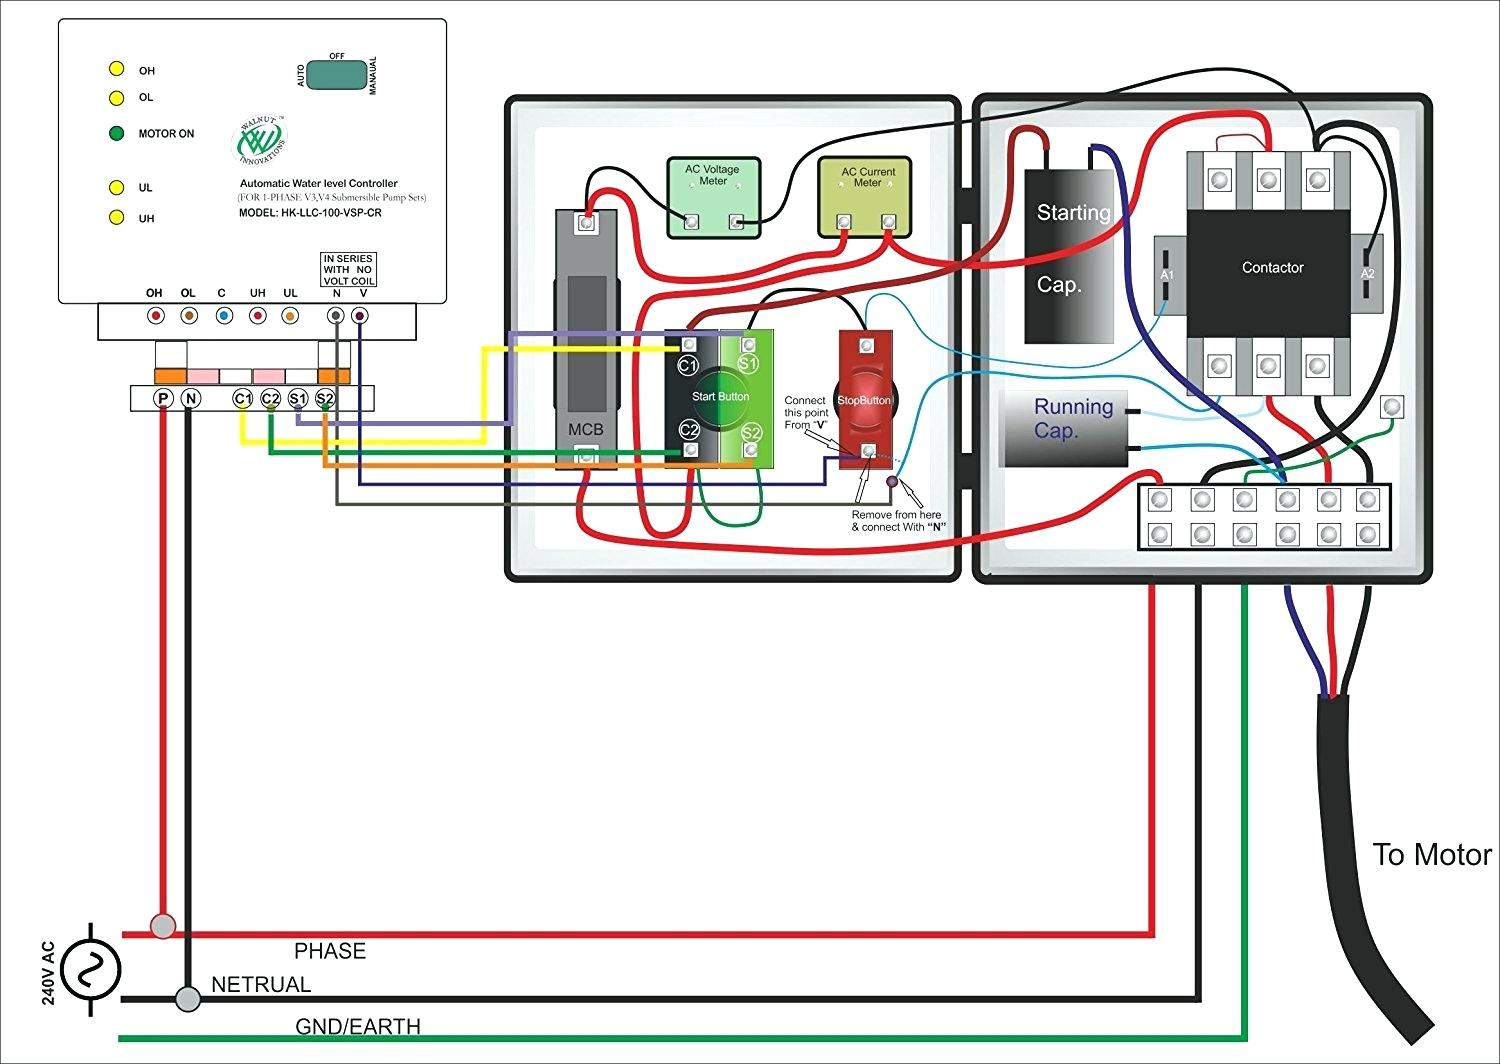 hight resolution of 3 phase pump wiring diagram wiring diagram used3 phase pump wiring wiring diagram load 3 phase